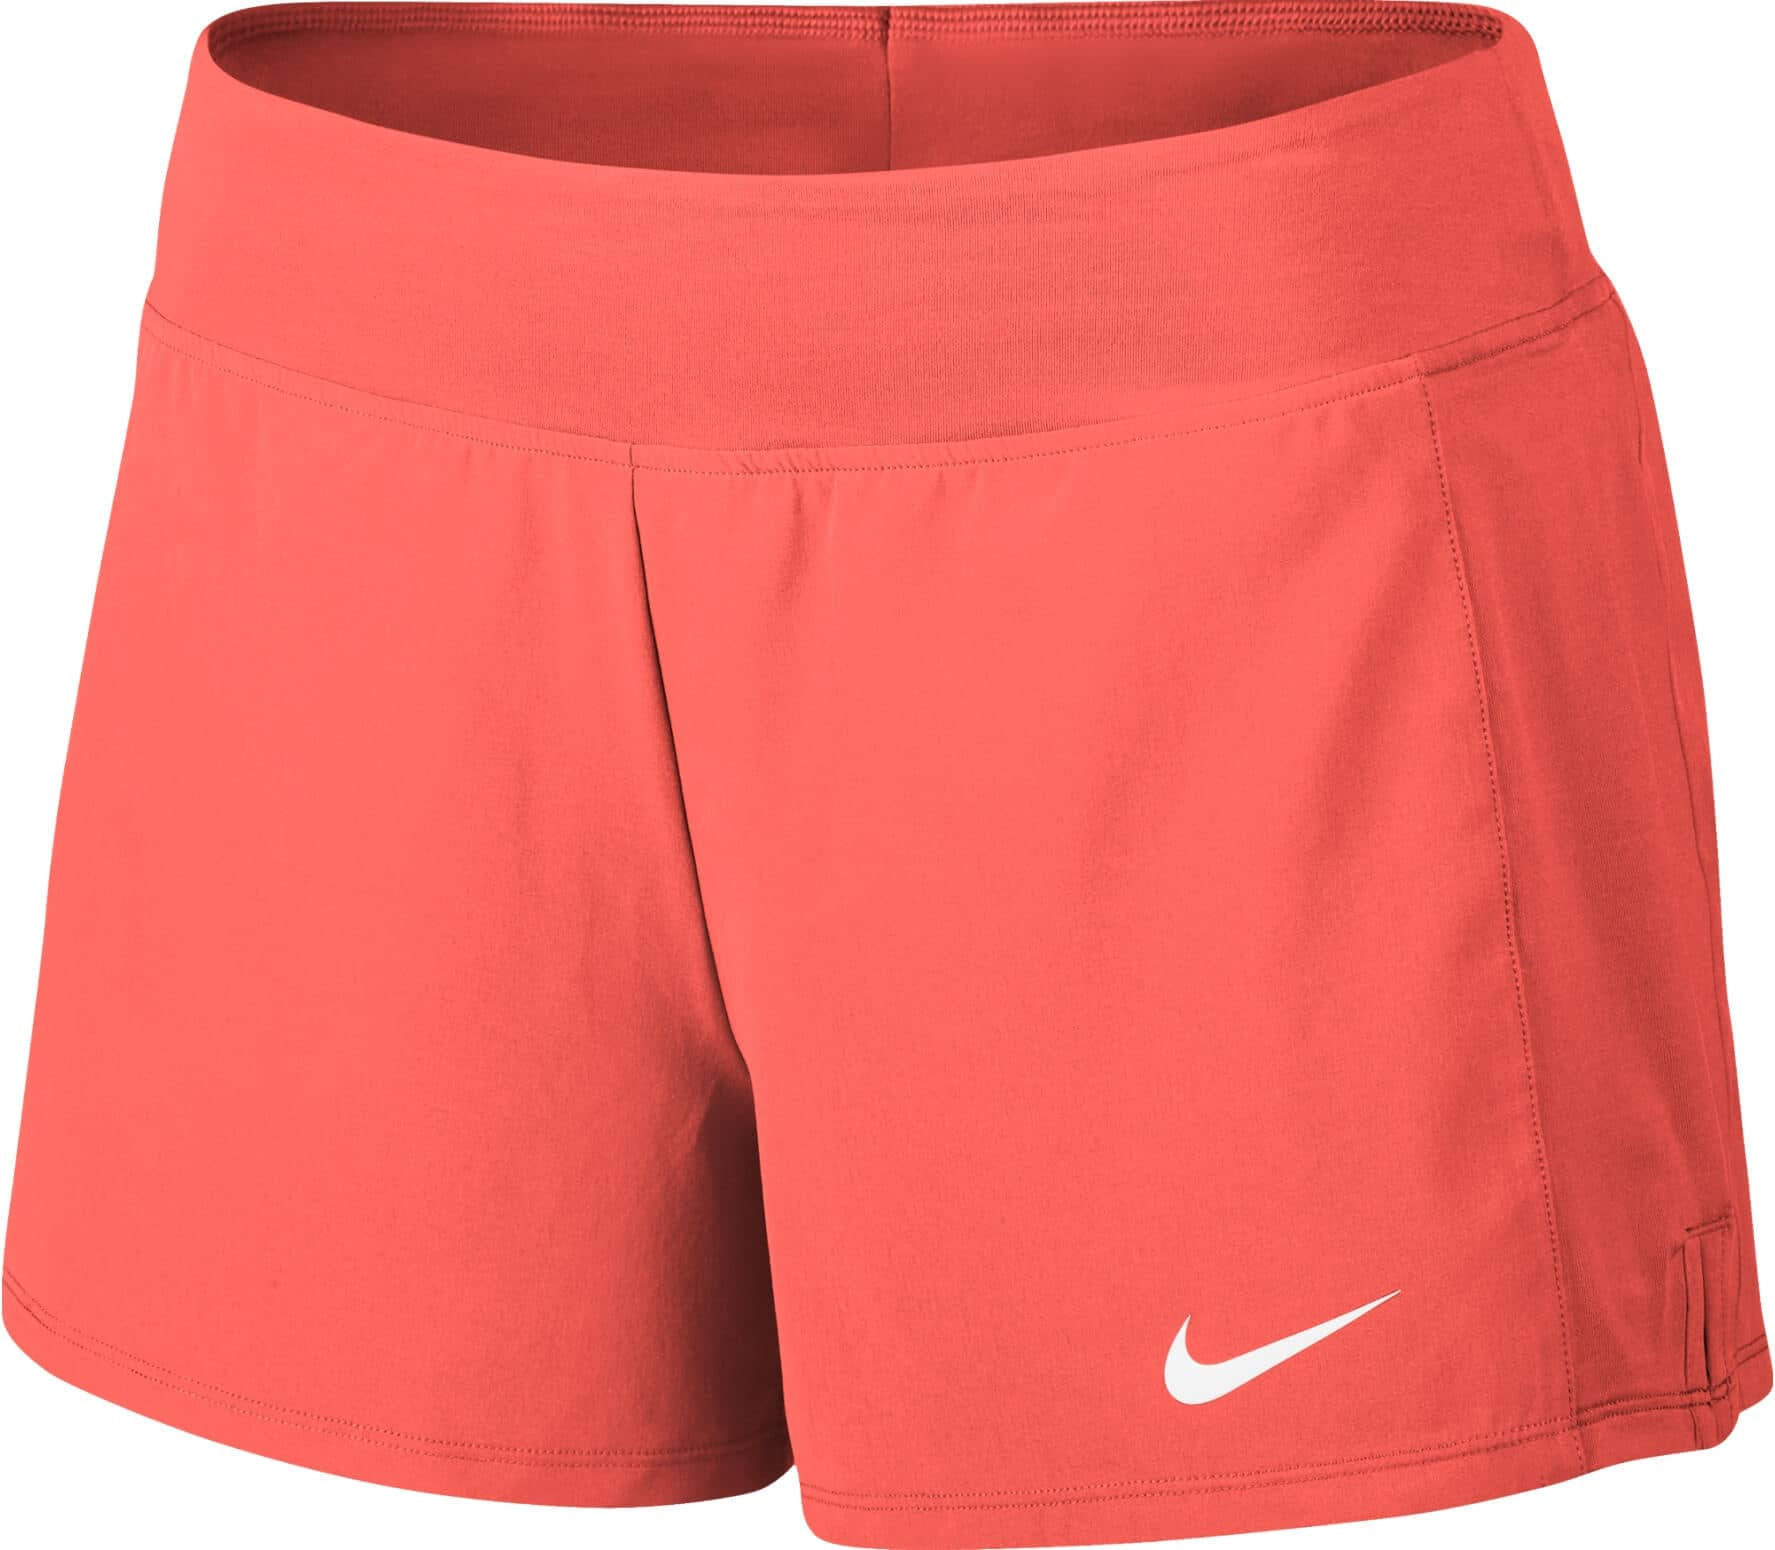 Nike - Court Flex Pure women s tennis shorts (orange white) - buy it ... 83137141c9